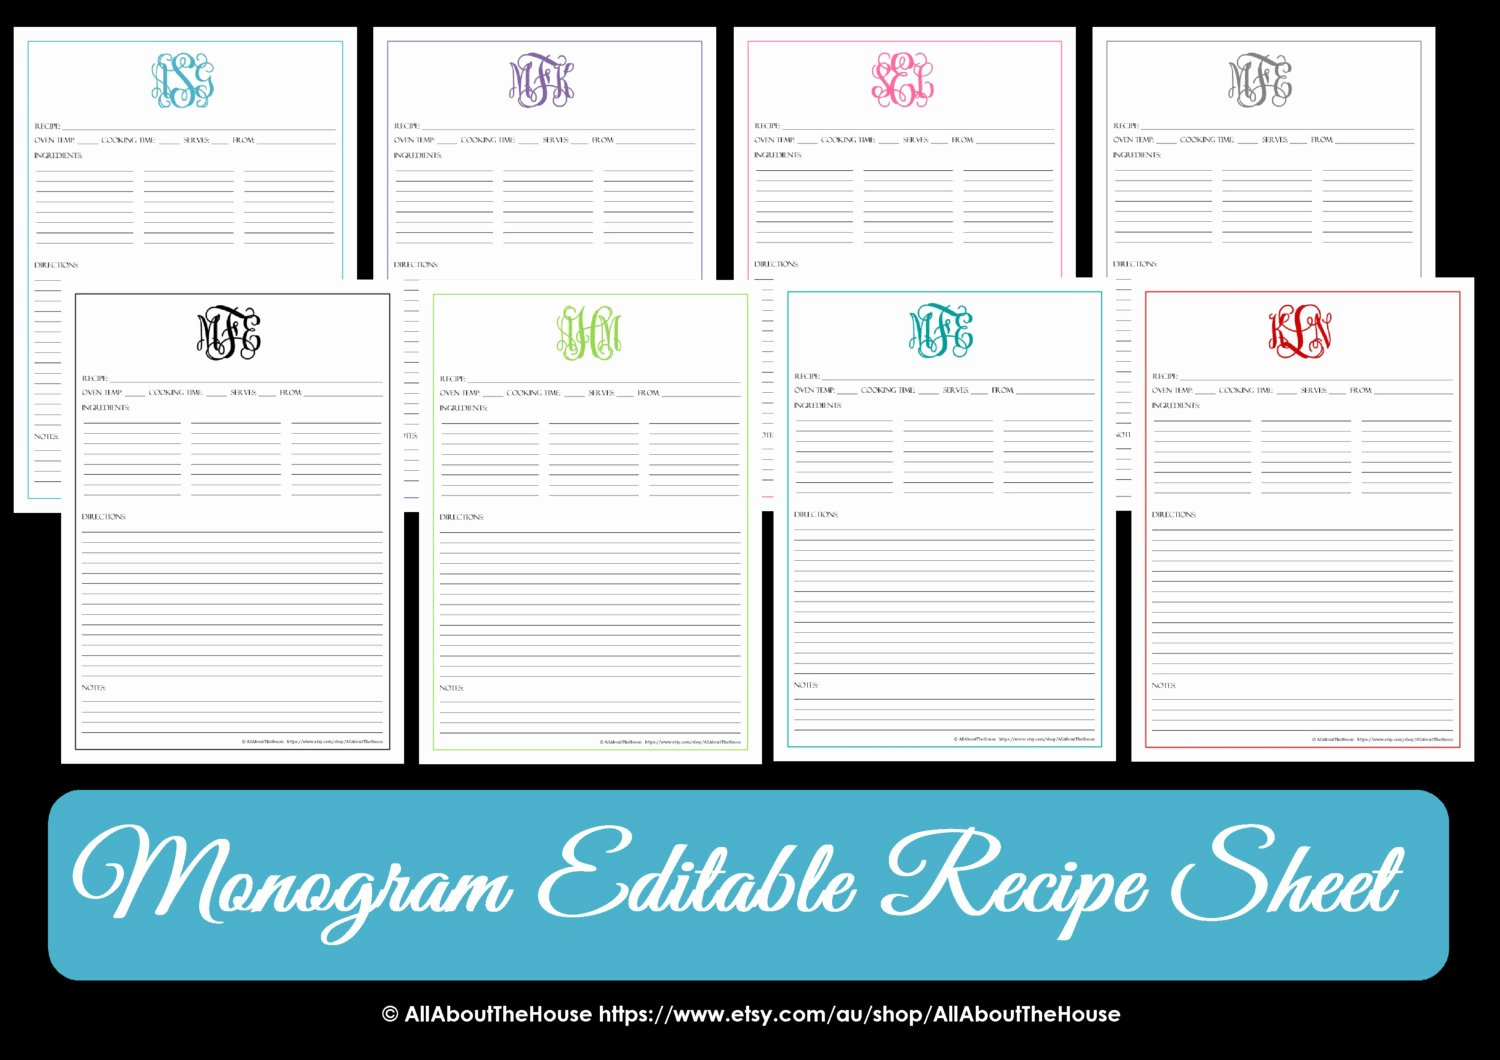 Editable Recipe Card Template Awesome Monogram Recipe Sheet Editable Recipe Card Preppy Template